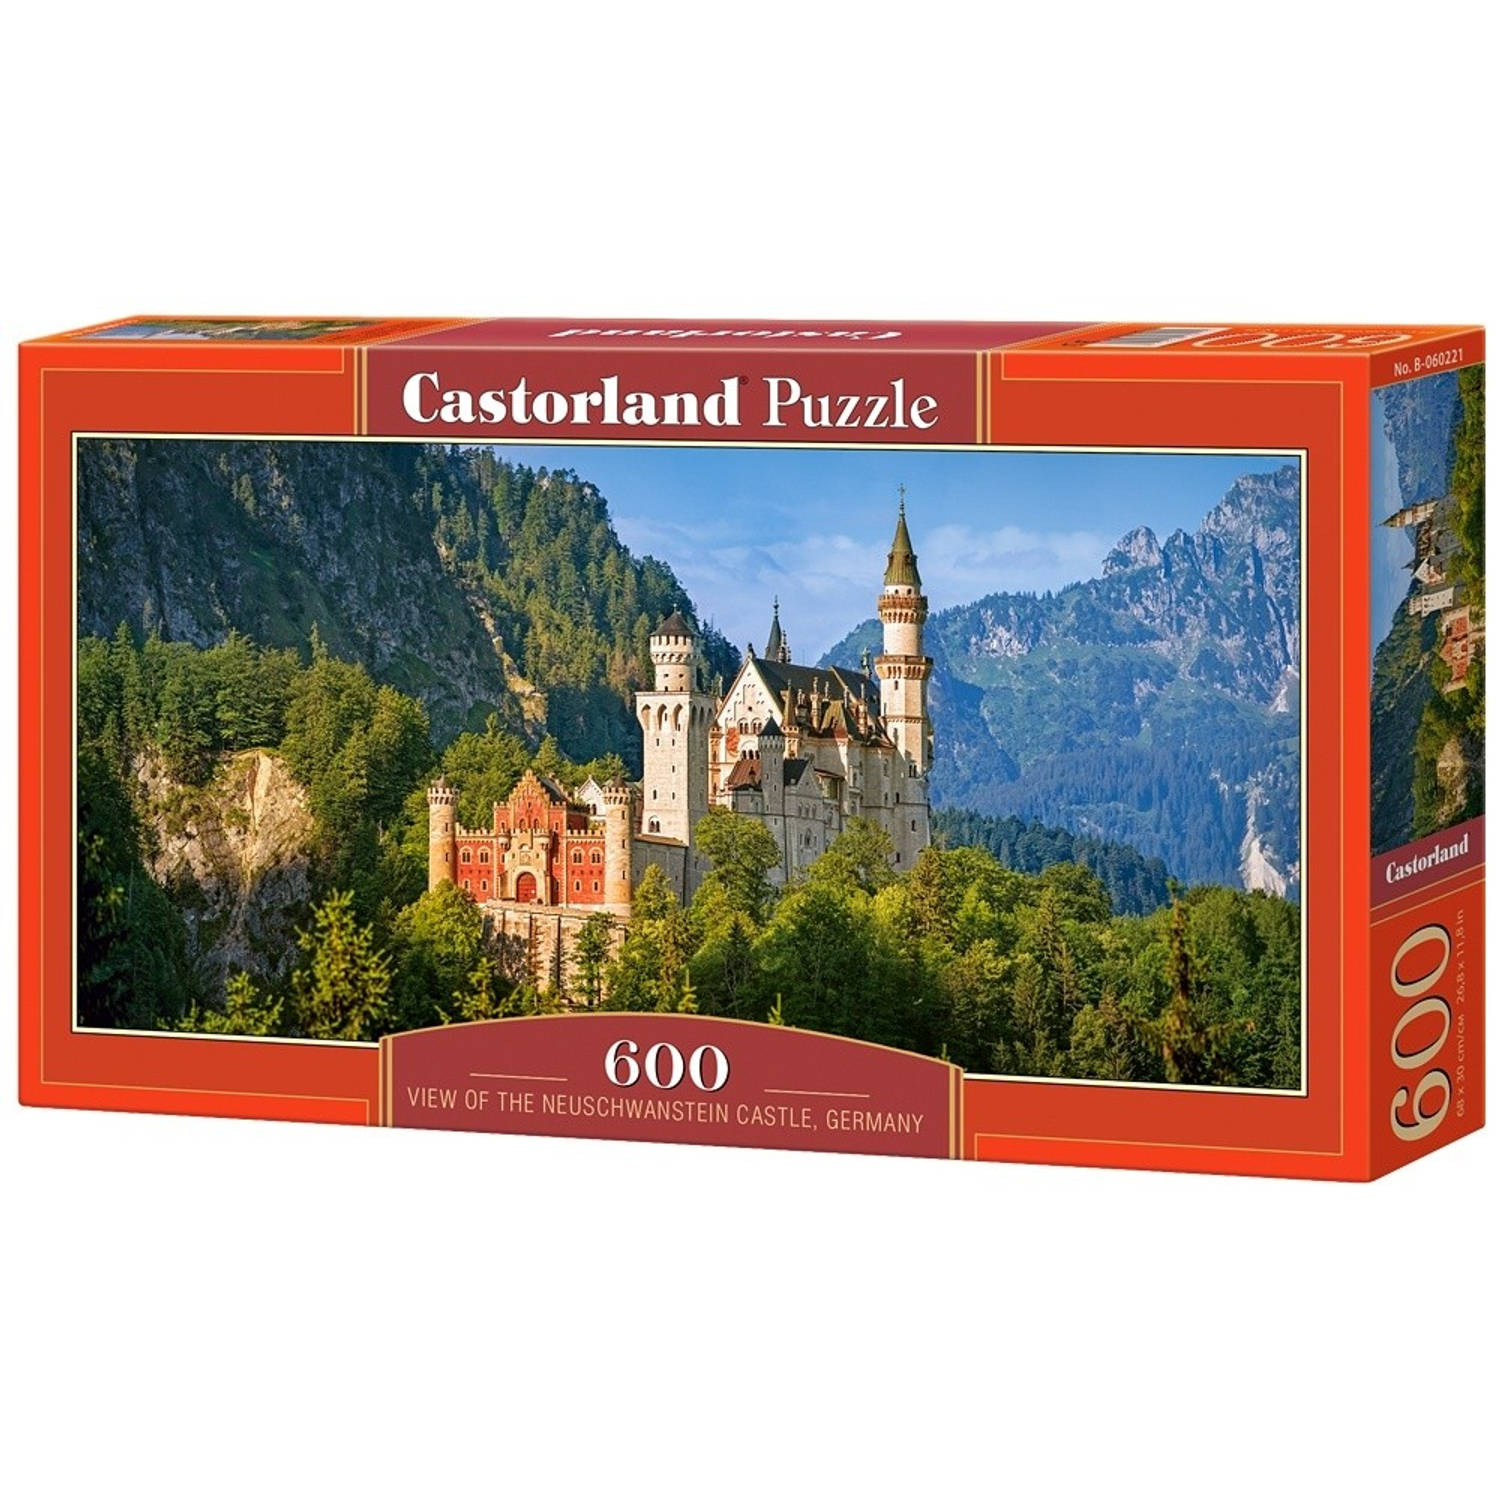 Castorland legpuzzel The Neuschwanstein Castle, Germany 600 st